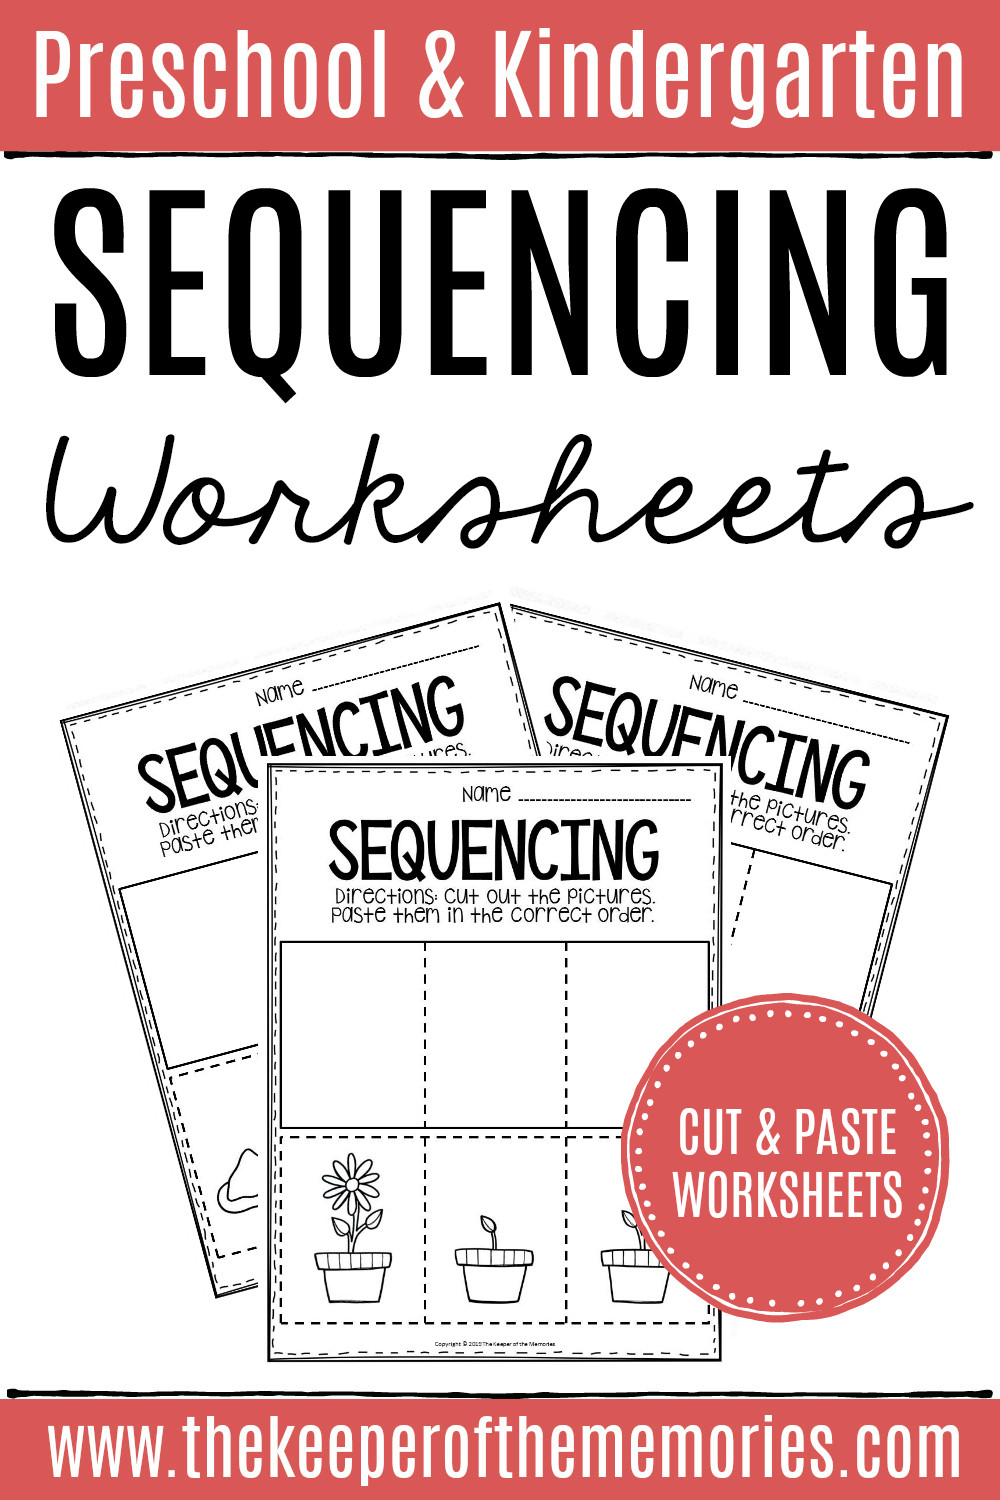 Preschool Sequencing Worksheets 3 Step Sequencing Worksheets the Keeper Of the Memories